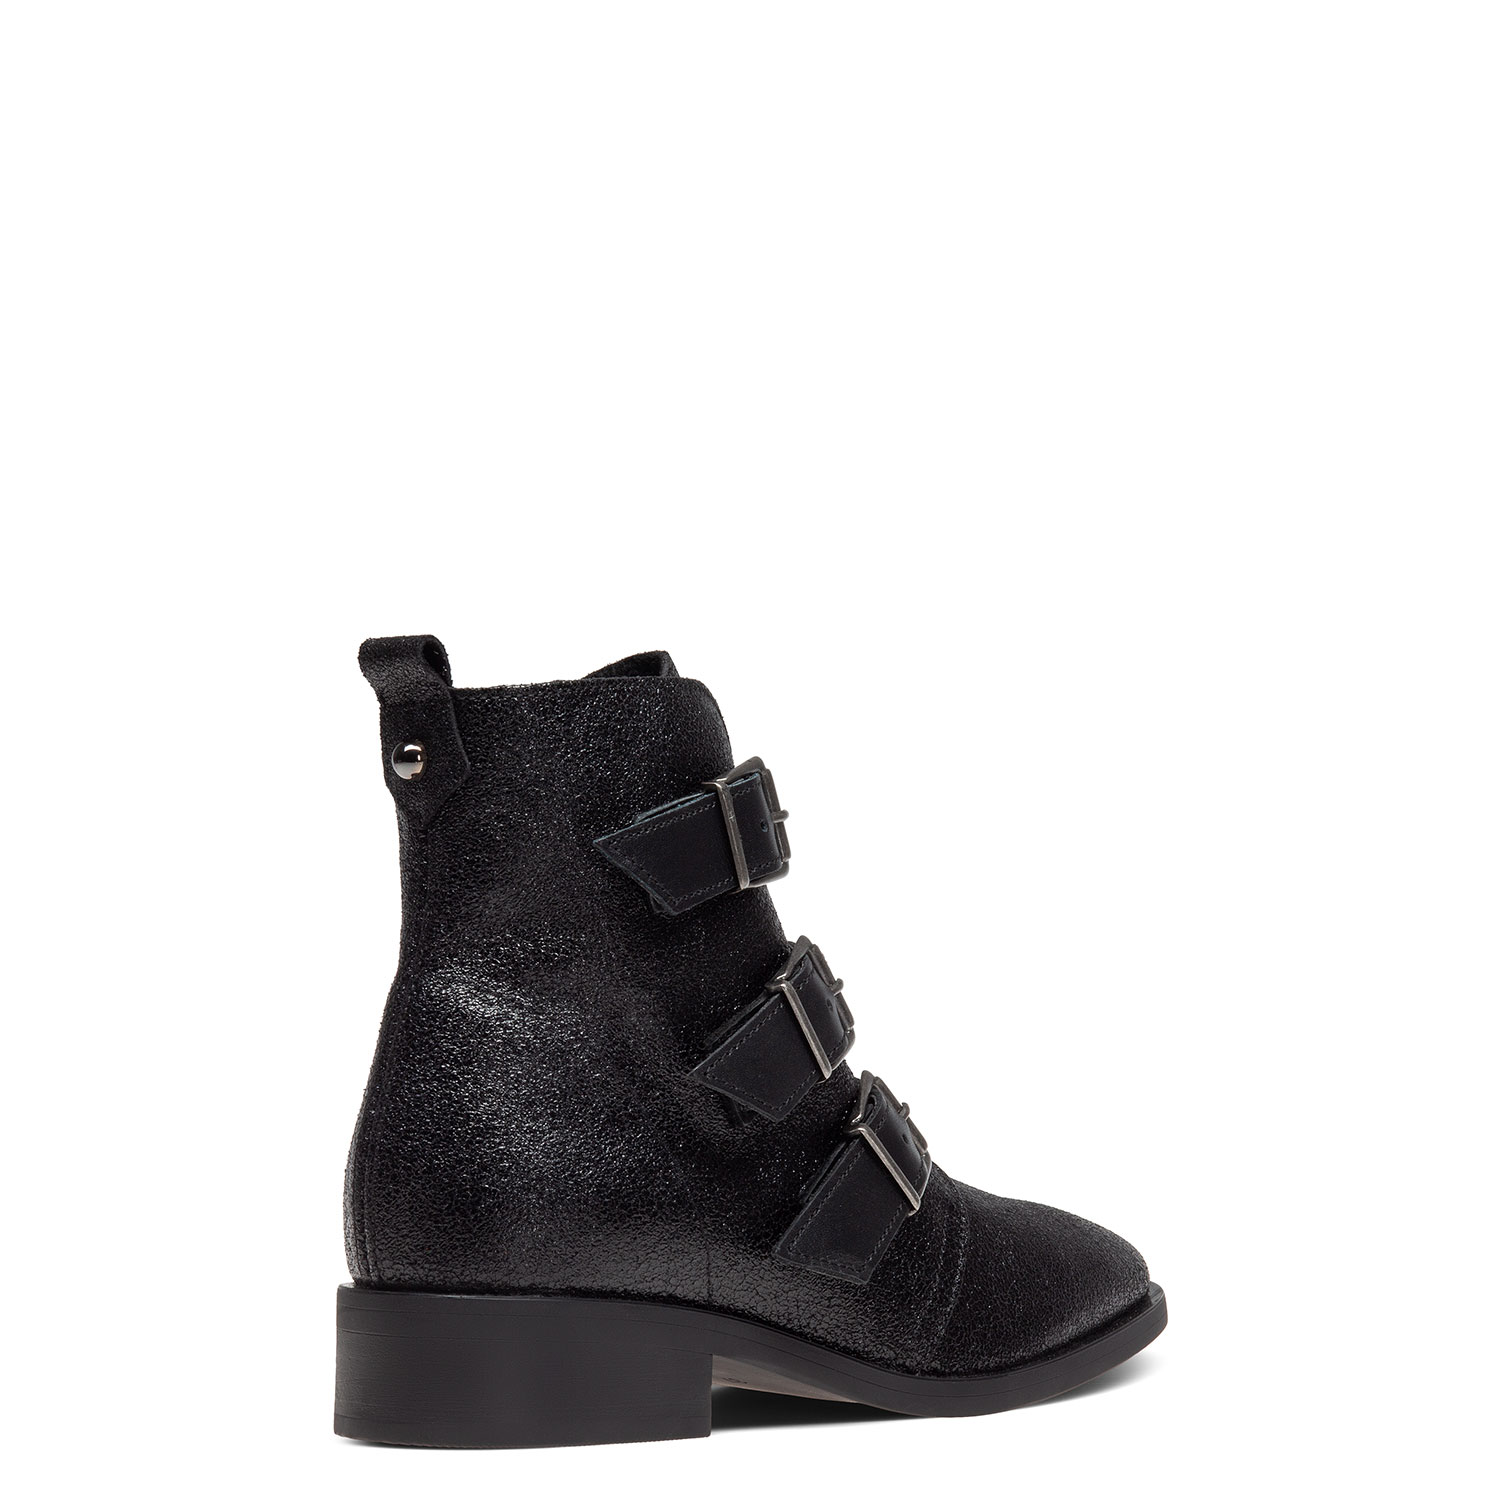 Women's ankle boots PAZOLINI SI-X6315-1BL